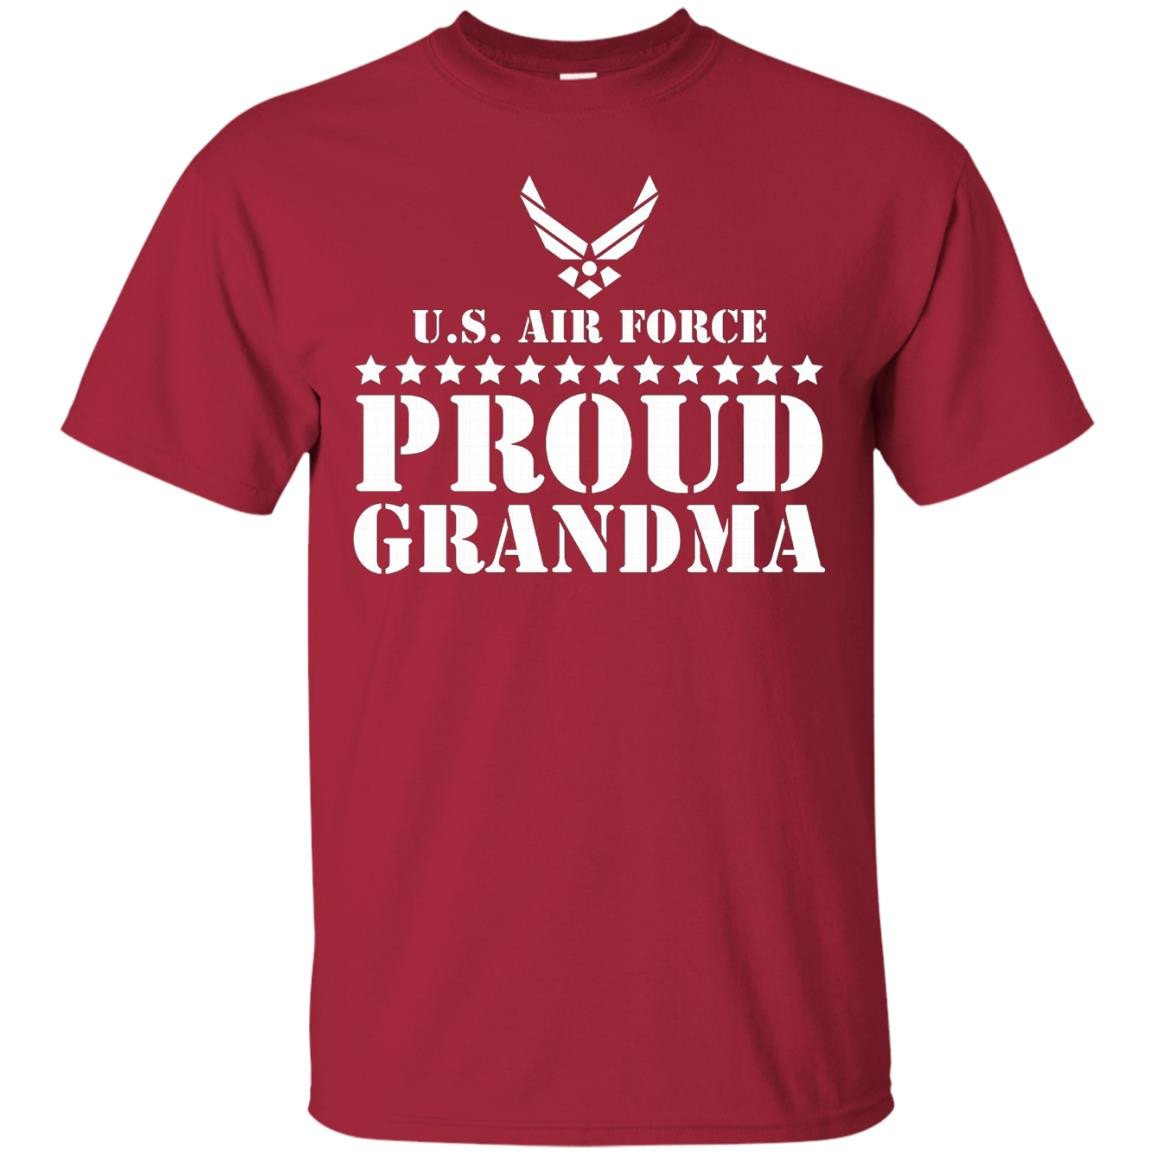 Gift Army Family - Proud Grandma U.S. Air Force T-shirt - T-Shirt